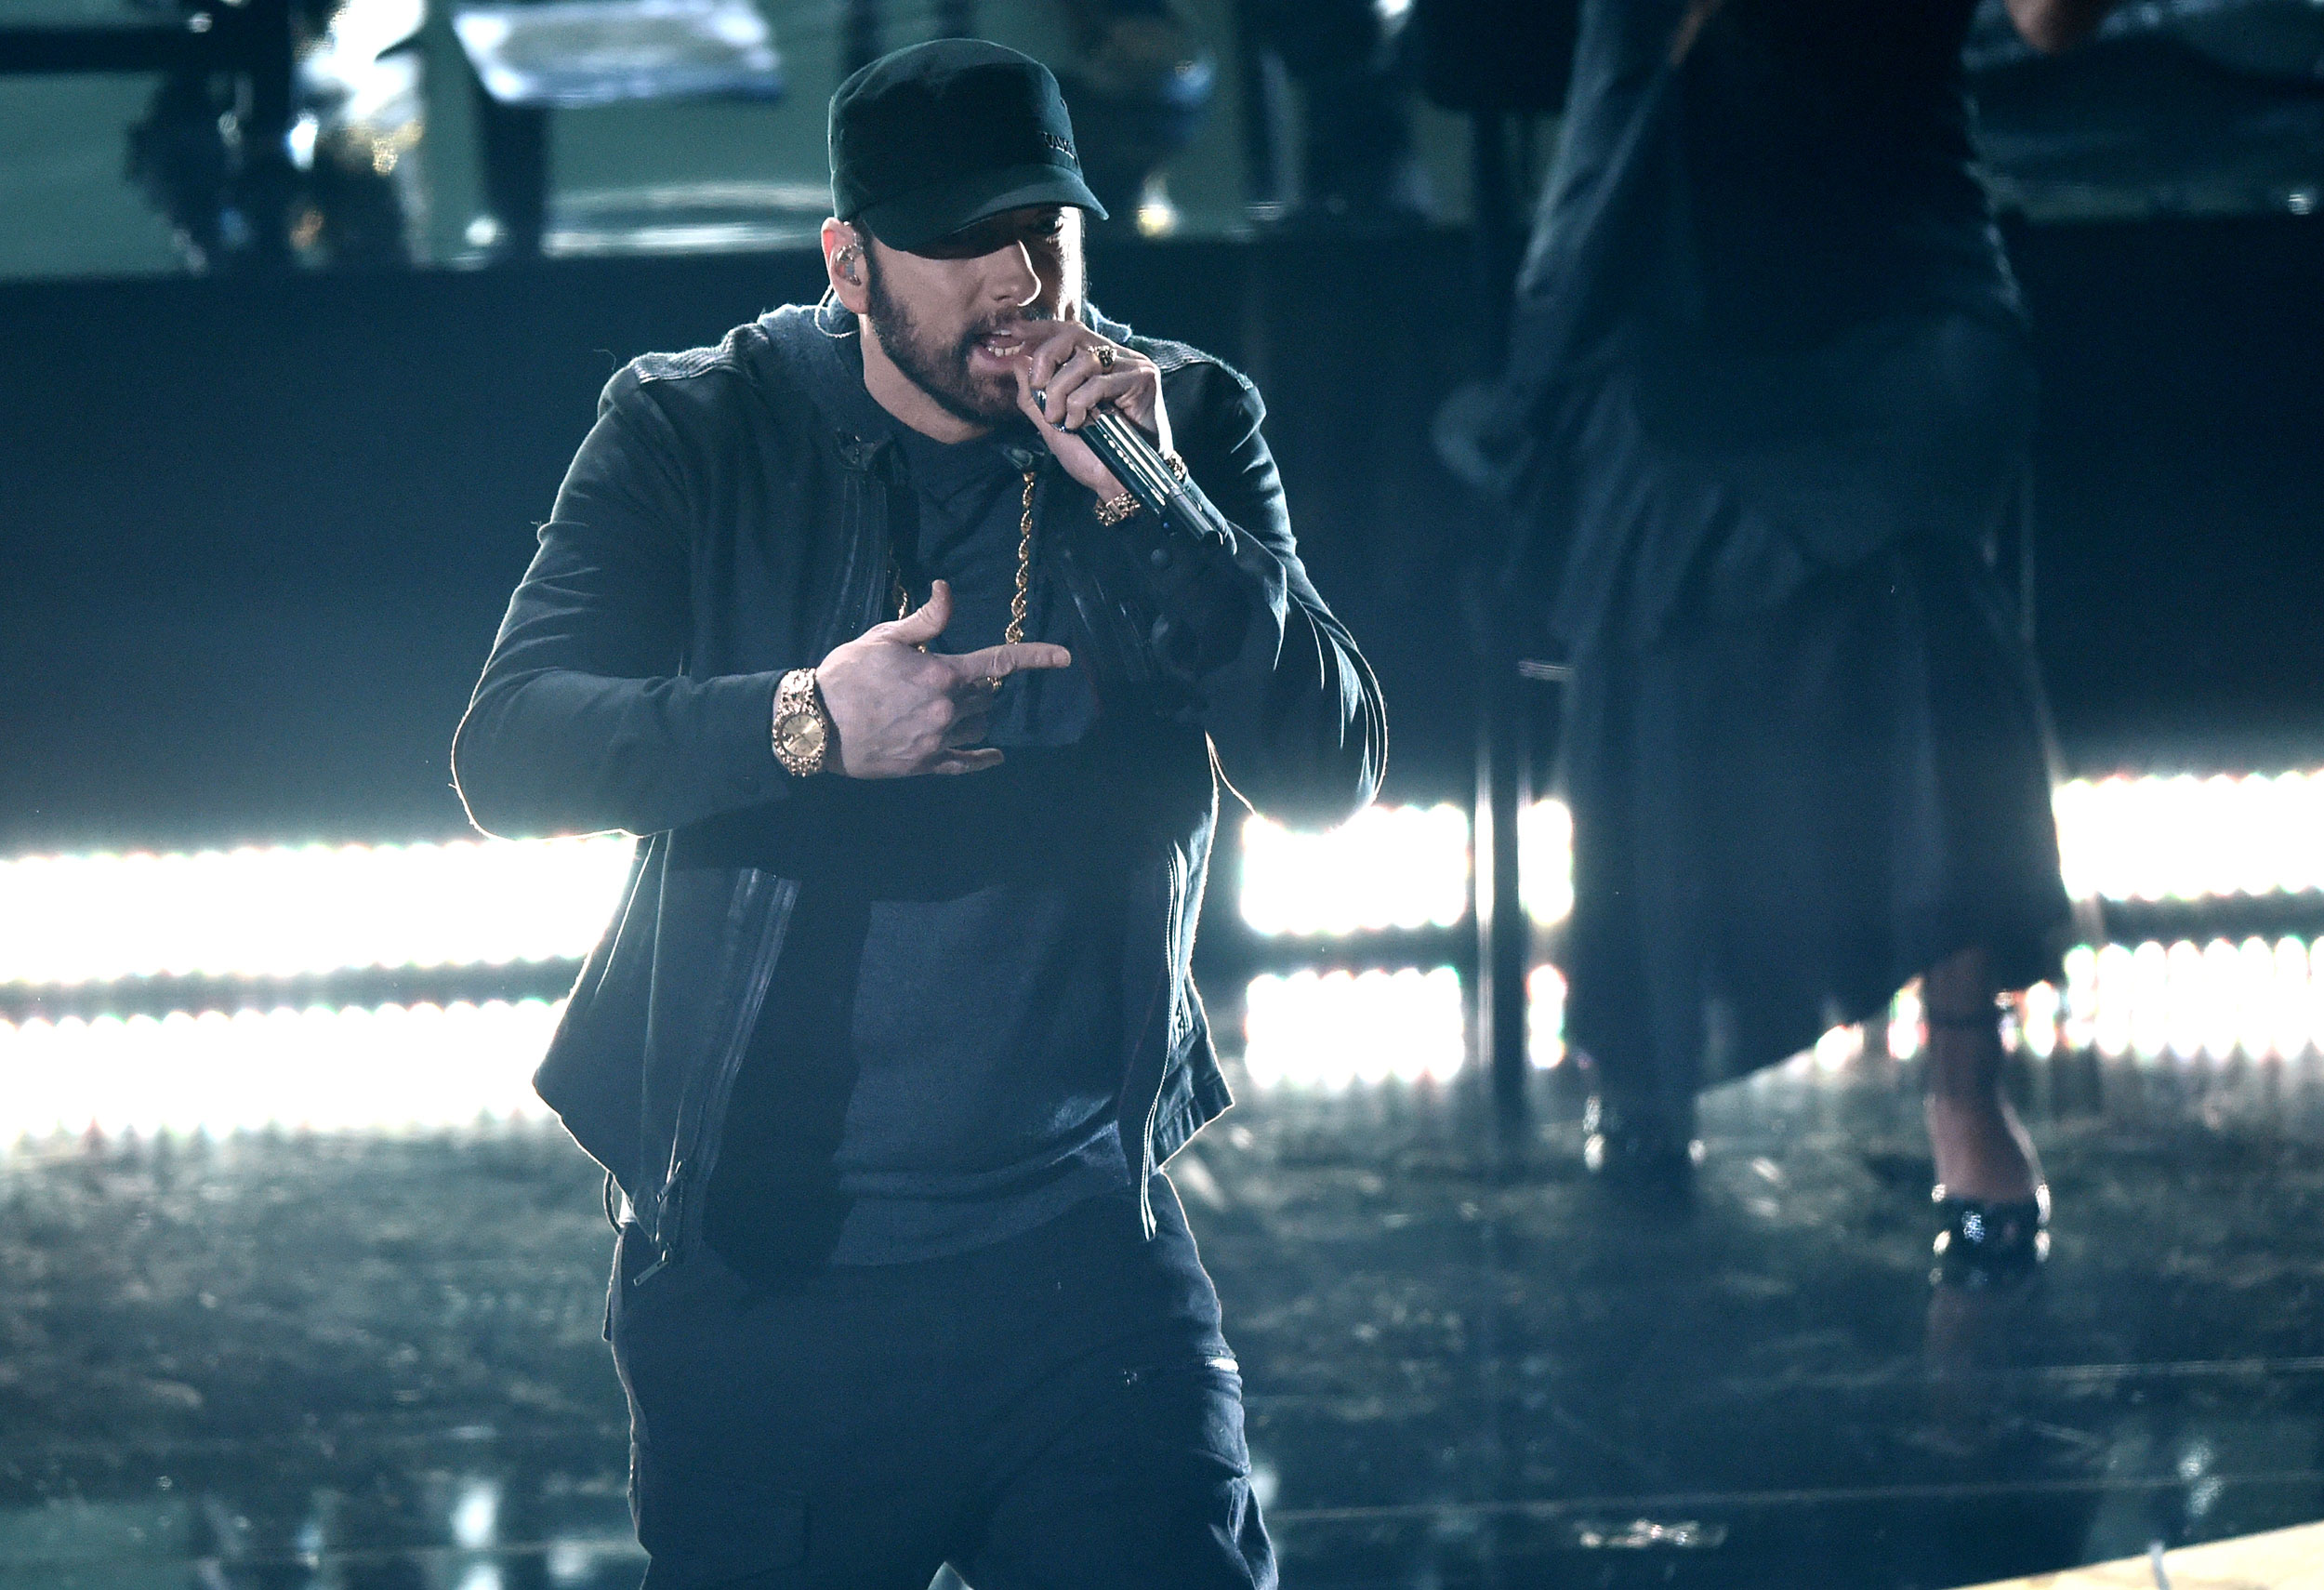 Eminem's 'Rap God' passes one billion views on YouTube